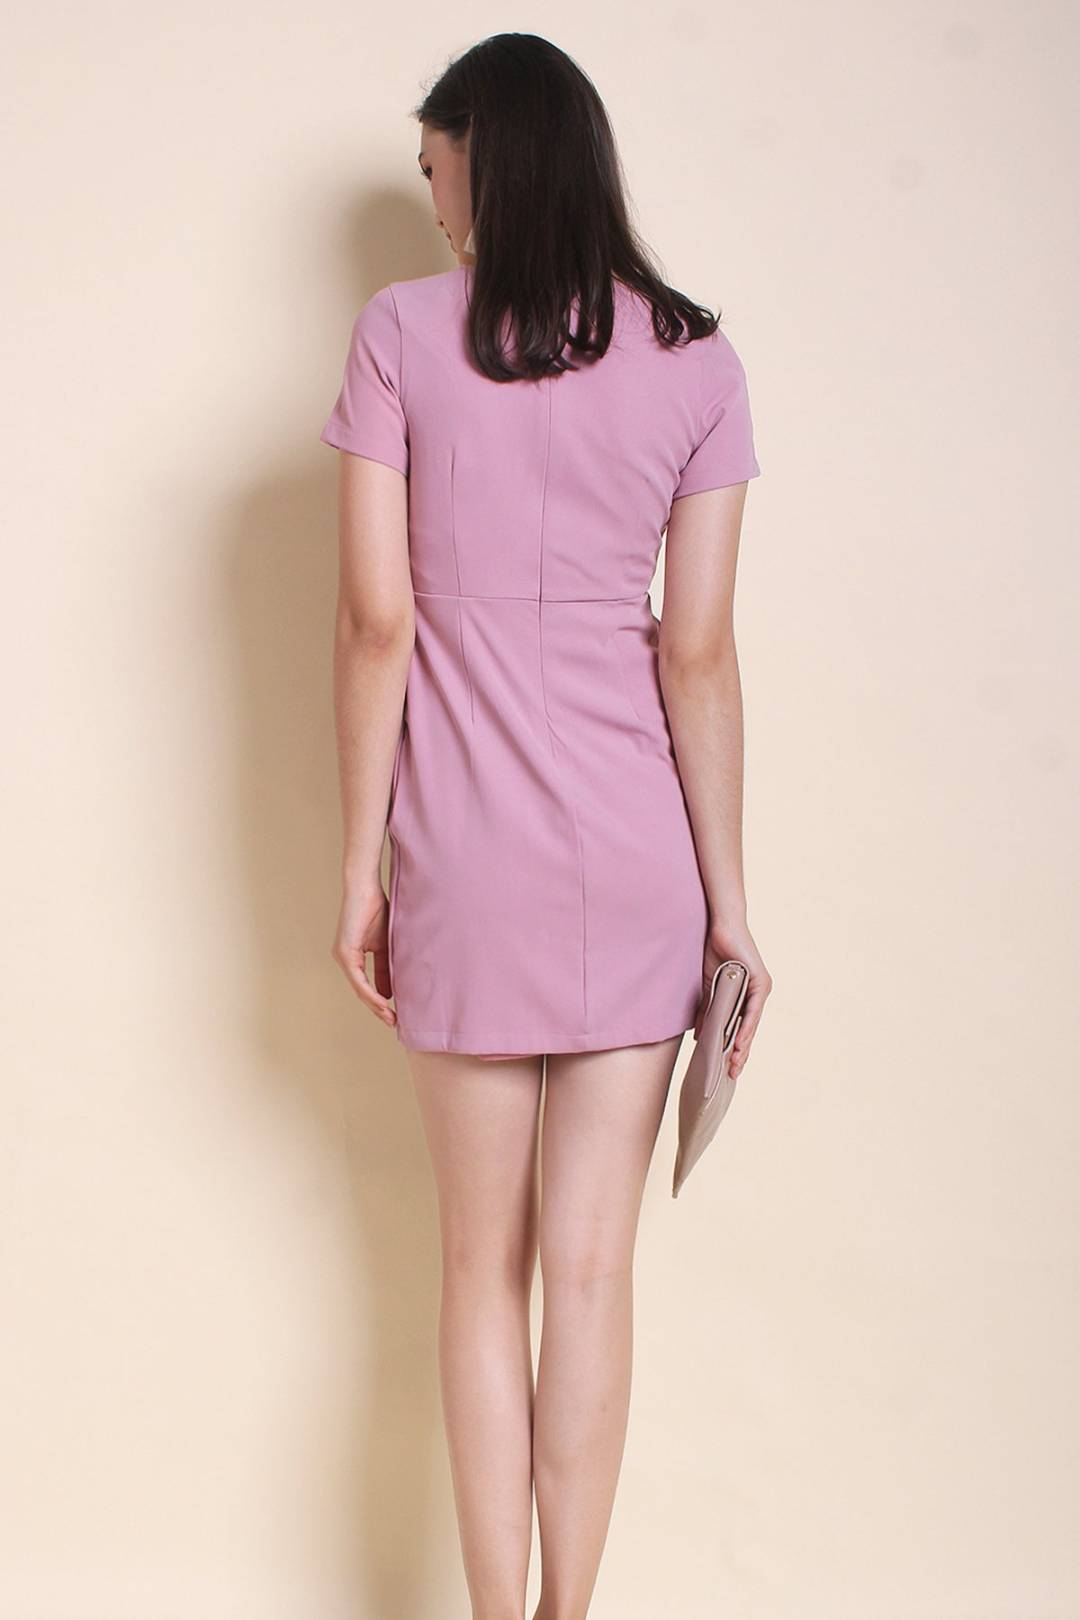 MADEBYNM DORSET V-NECK FIT N FLARE WORK DRESS IN SPANISH PINK [XS/S/M/L]